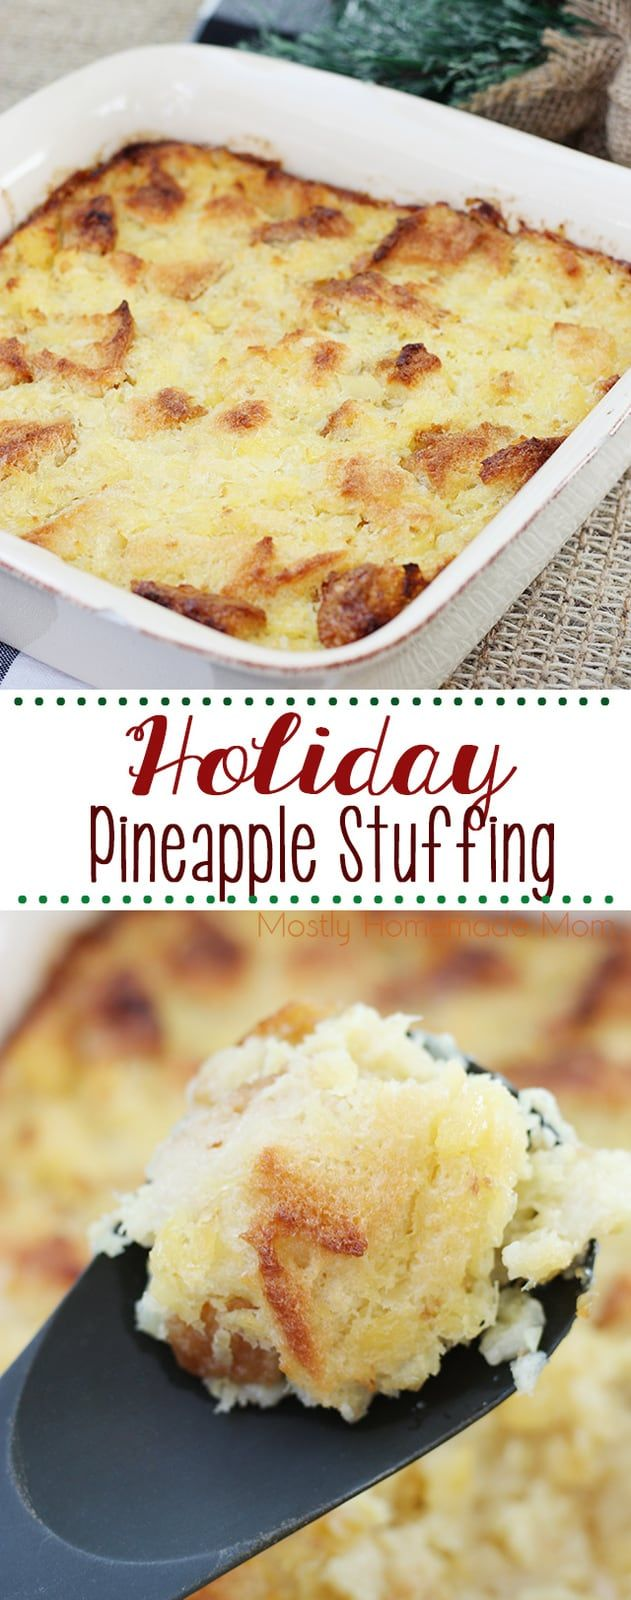 Pineapple Stuffing Recipe Cooking Recipes Side Dish Recipes Food Recipes